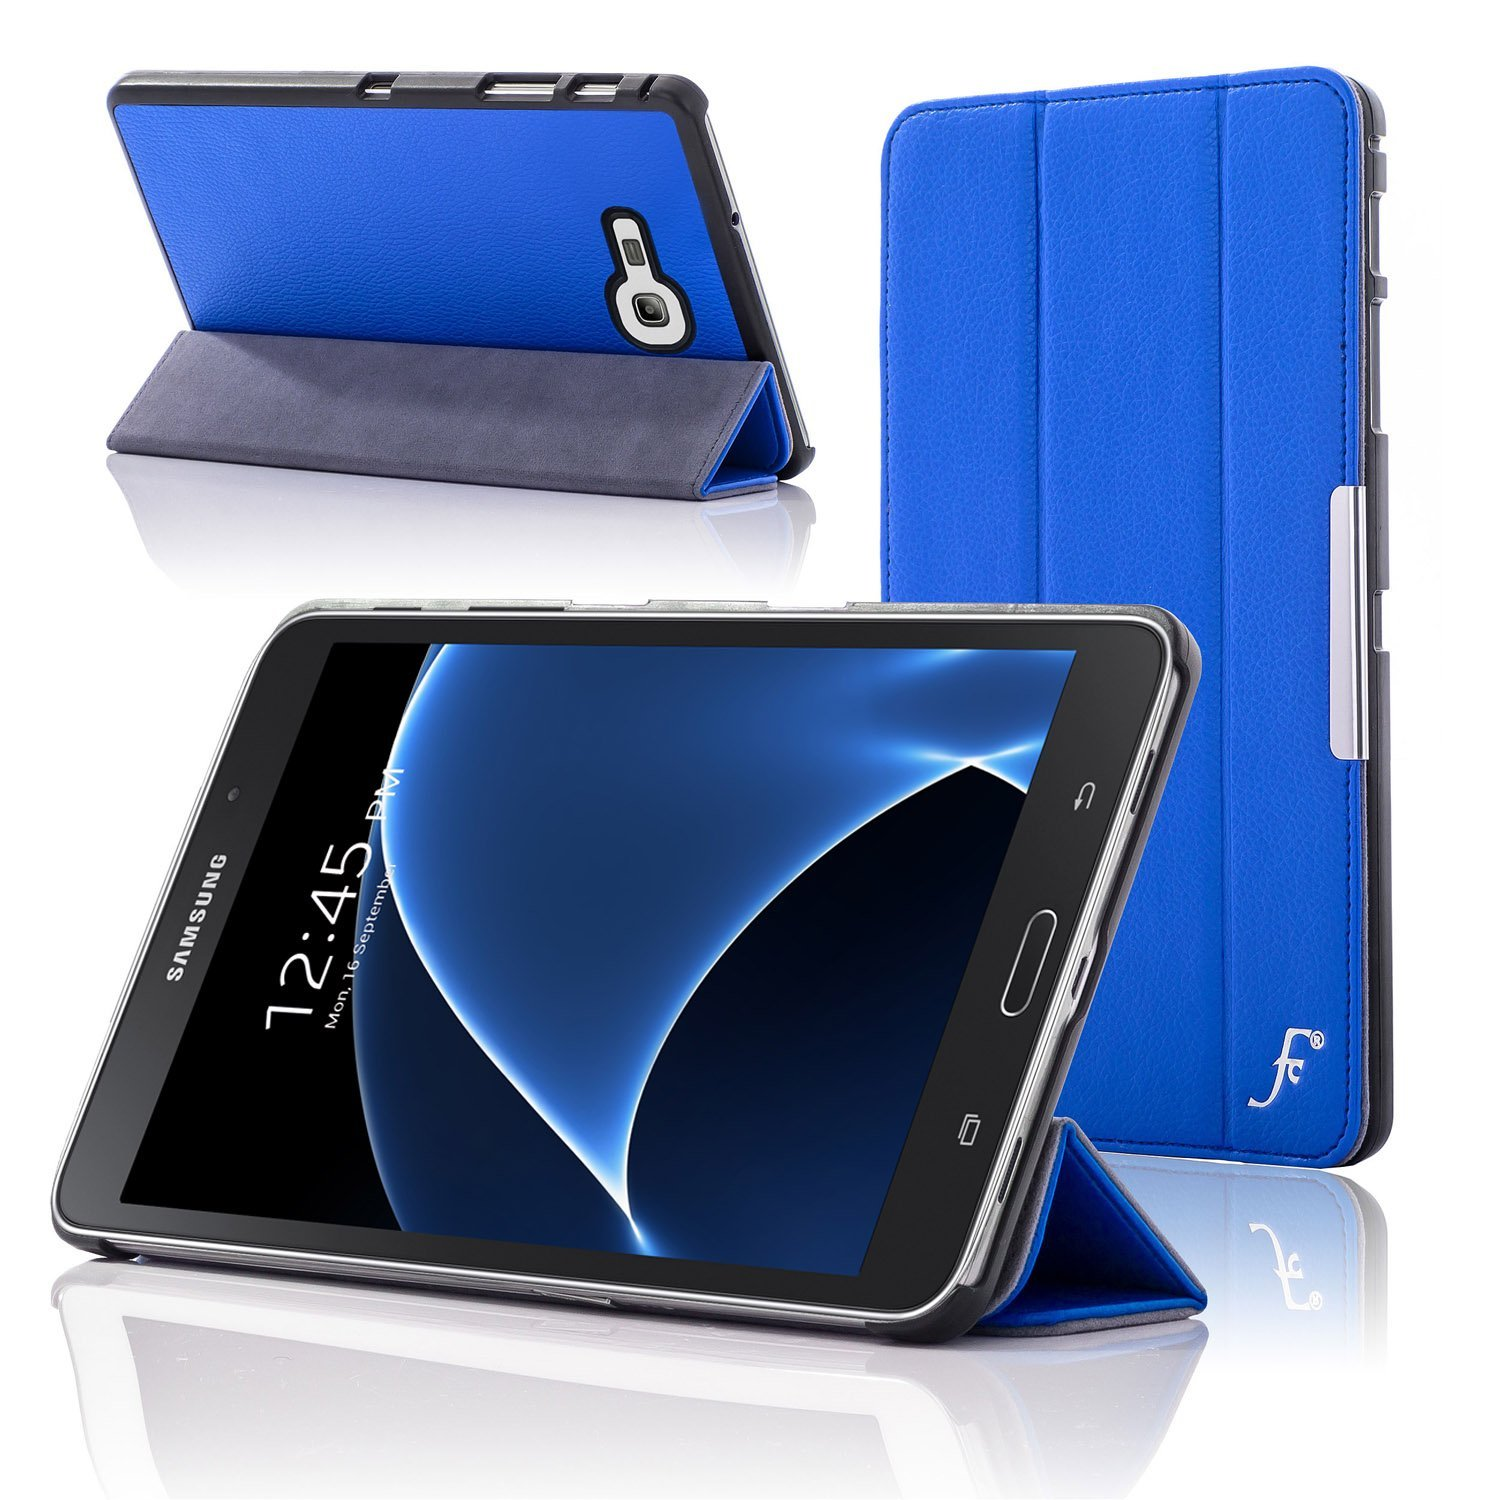 You re viewing Forefront Cases Samsung Galaxy Tab A 7 0 Tab J Tab J Max Leather Folding Smart Case Cover Stand BLUE £29 99 £8 99 inc